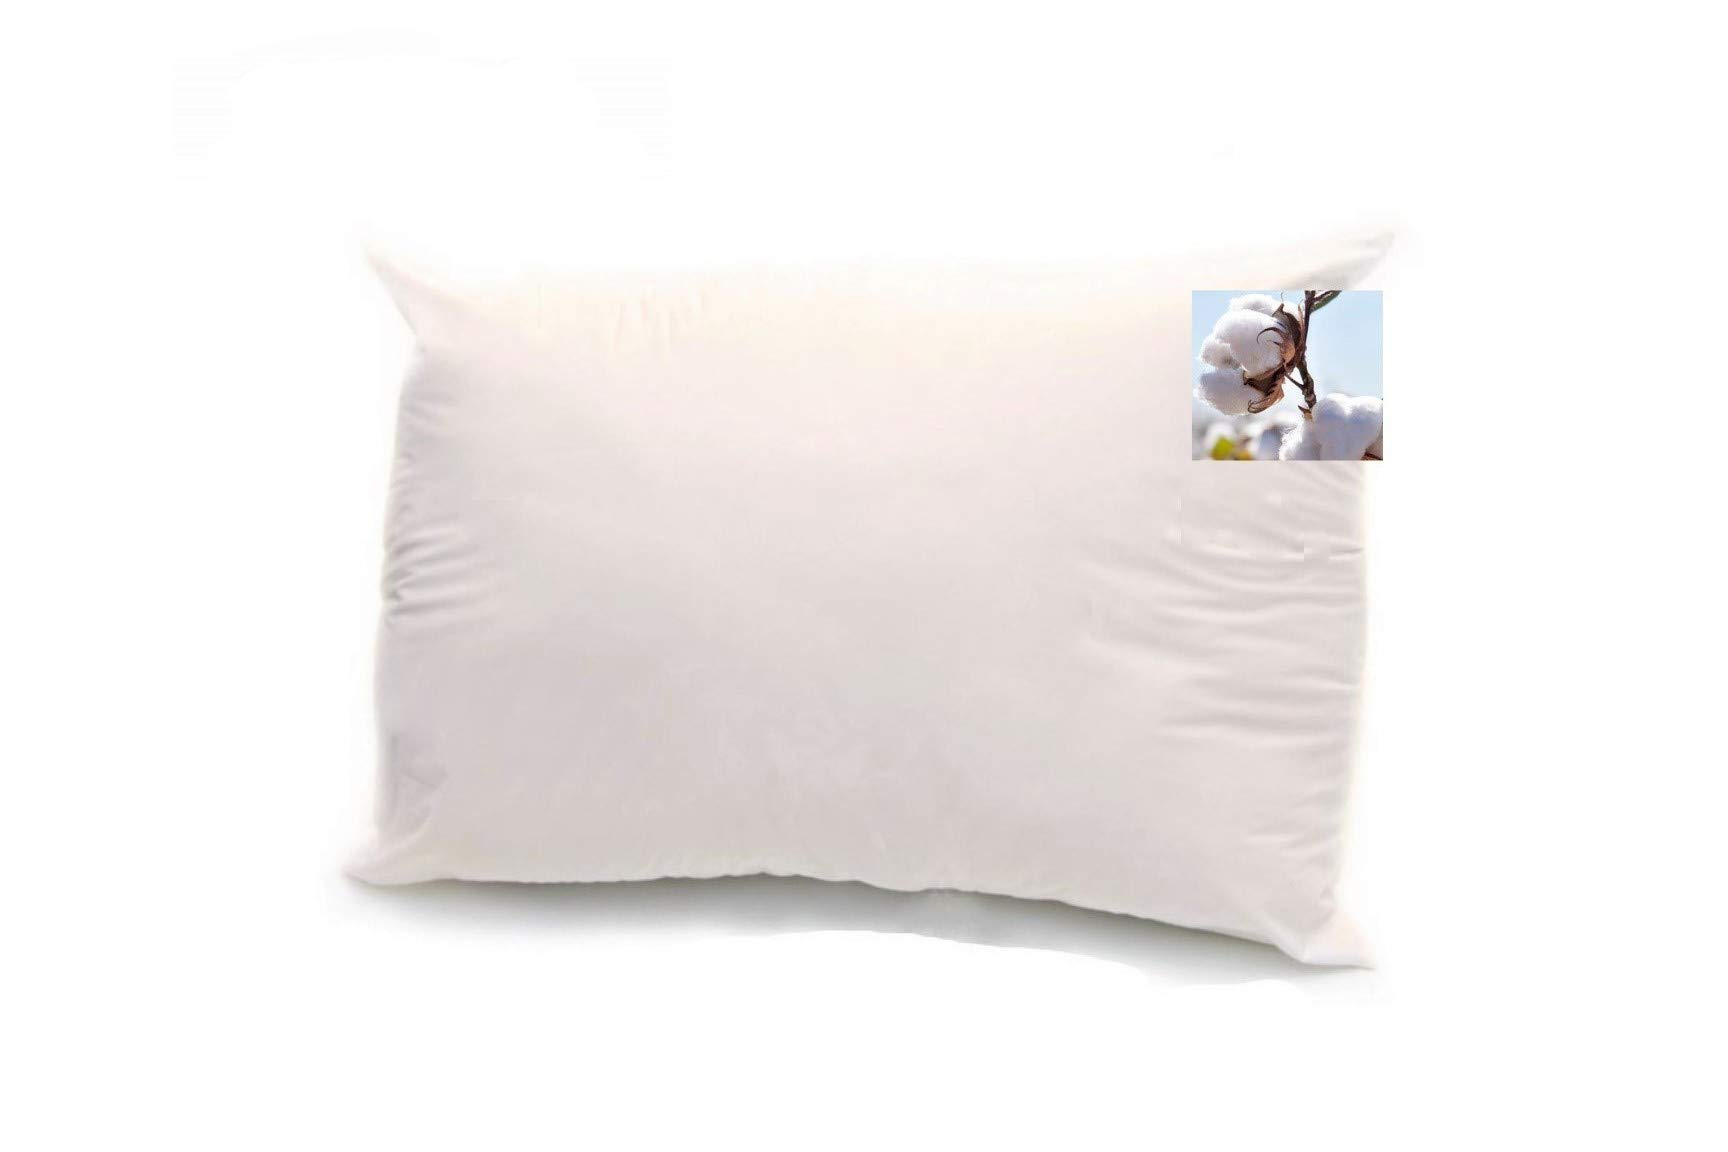 100% Organic Cotton Filled Pillow (Queen Size, Heavy Fill) with 100% Organic Cotton Cover, Zippered Adjustable Pillow for Desired Height, Breathable and Cooling, Eco-Friendly